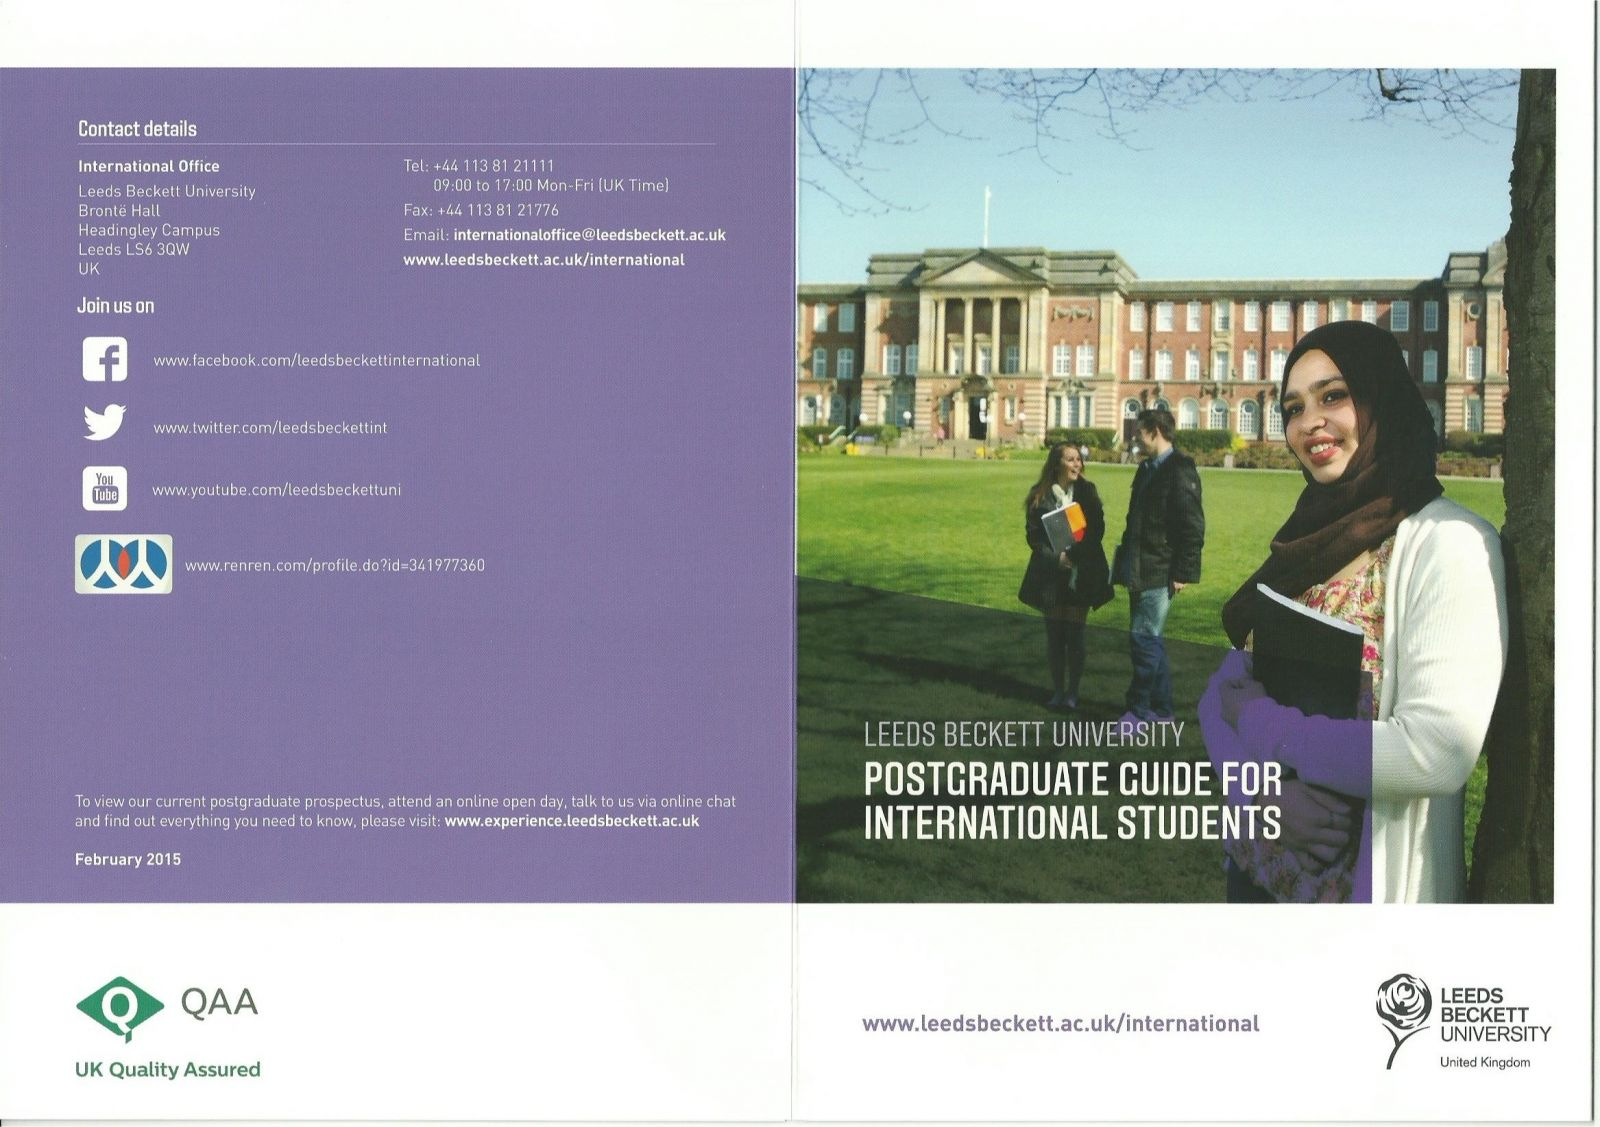 Postgraduate Guide for International Students at Leeds Beckett University, England 2016.